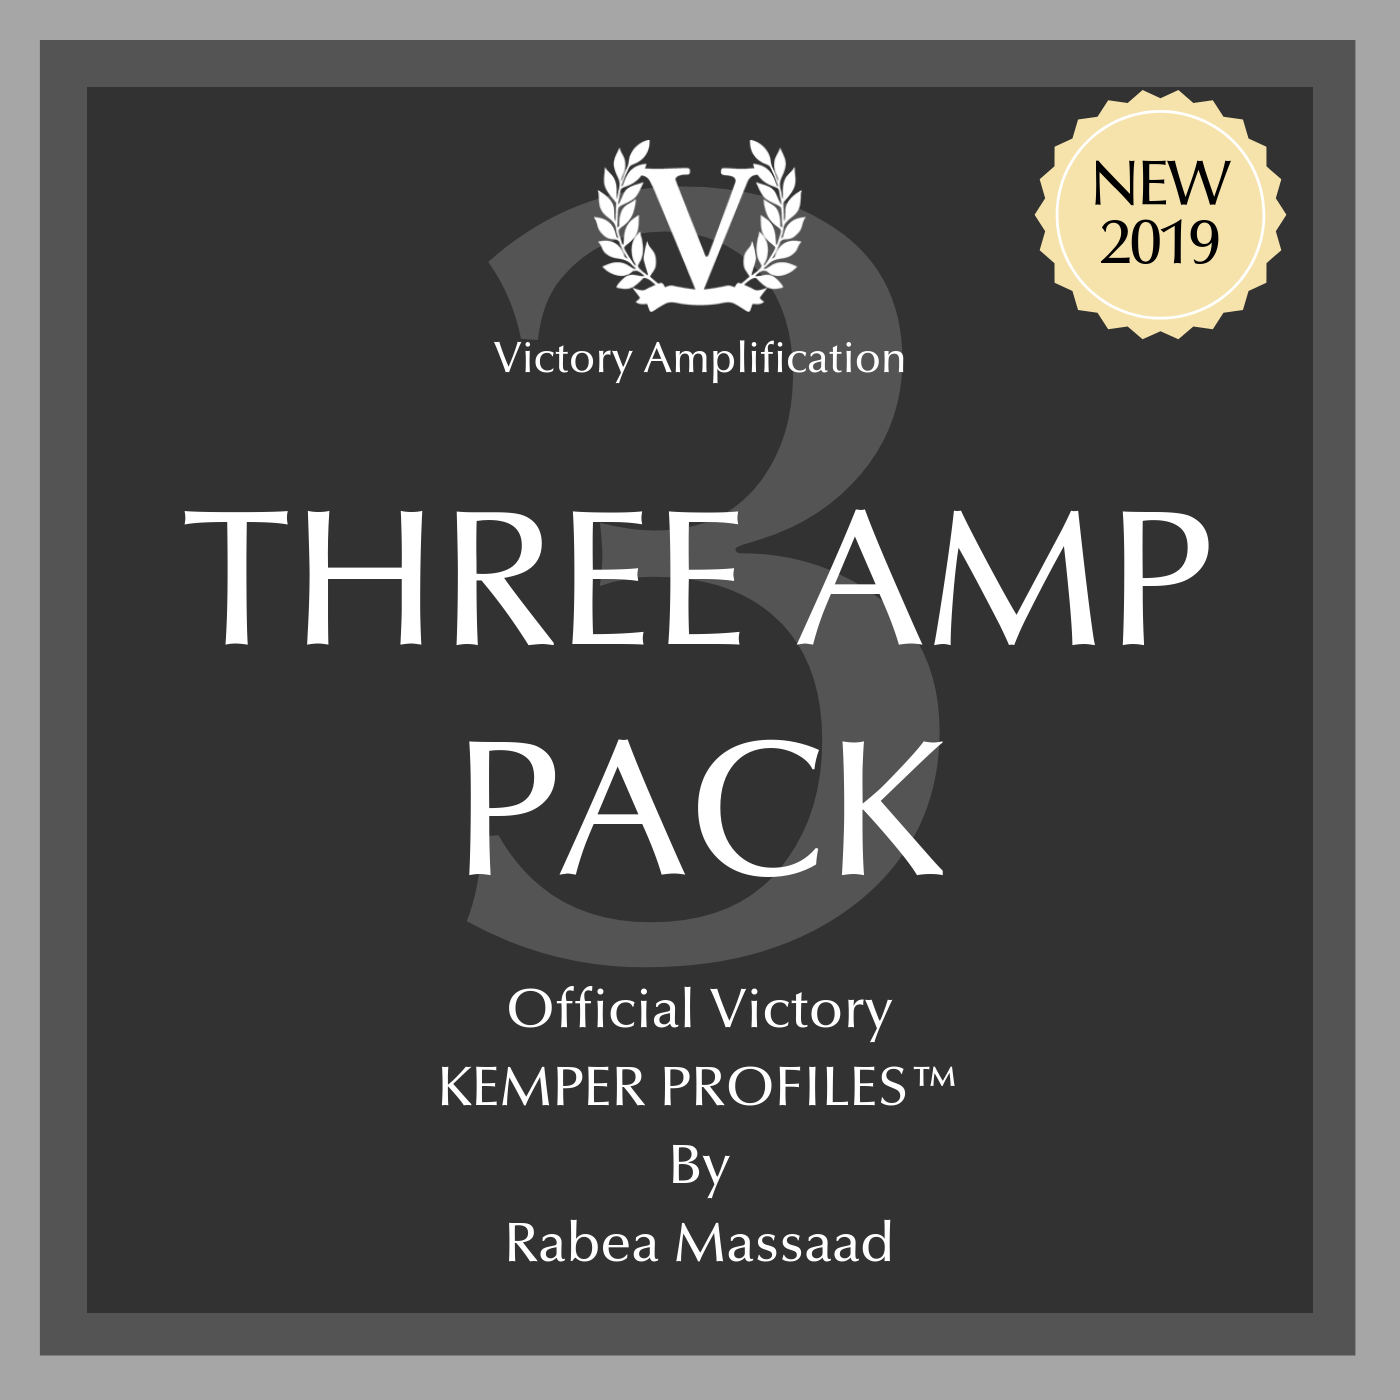 NEW! Victory Official Kemper Profile Packs - 3 Amps Pack